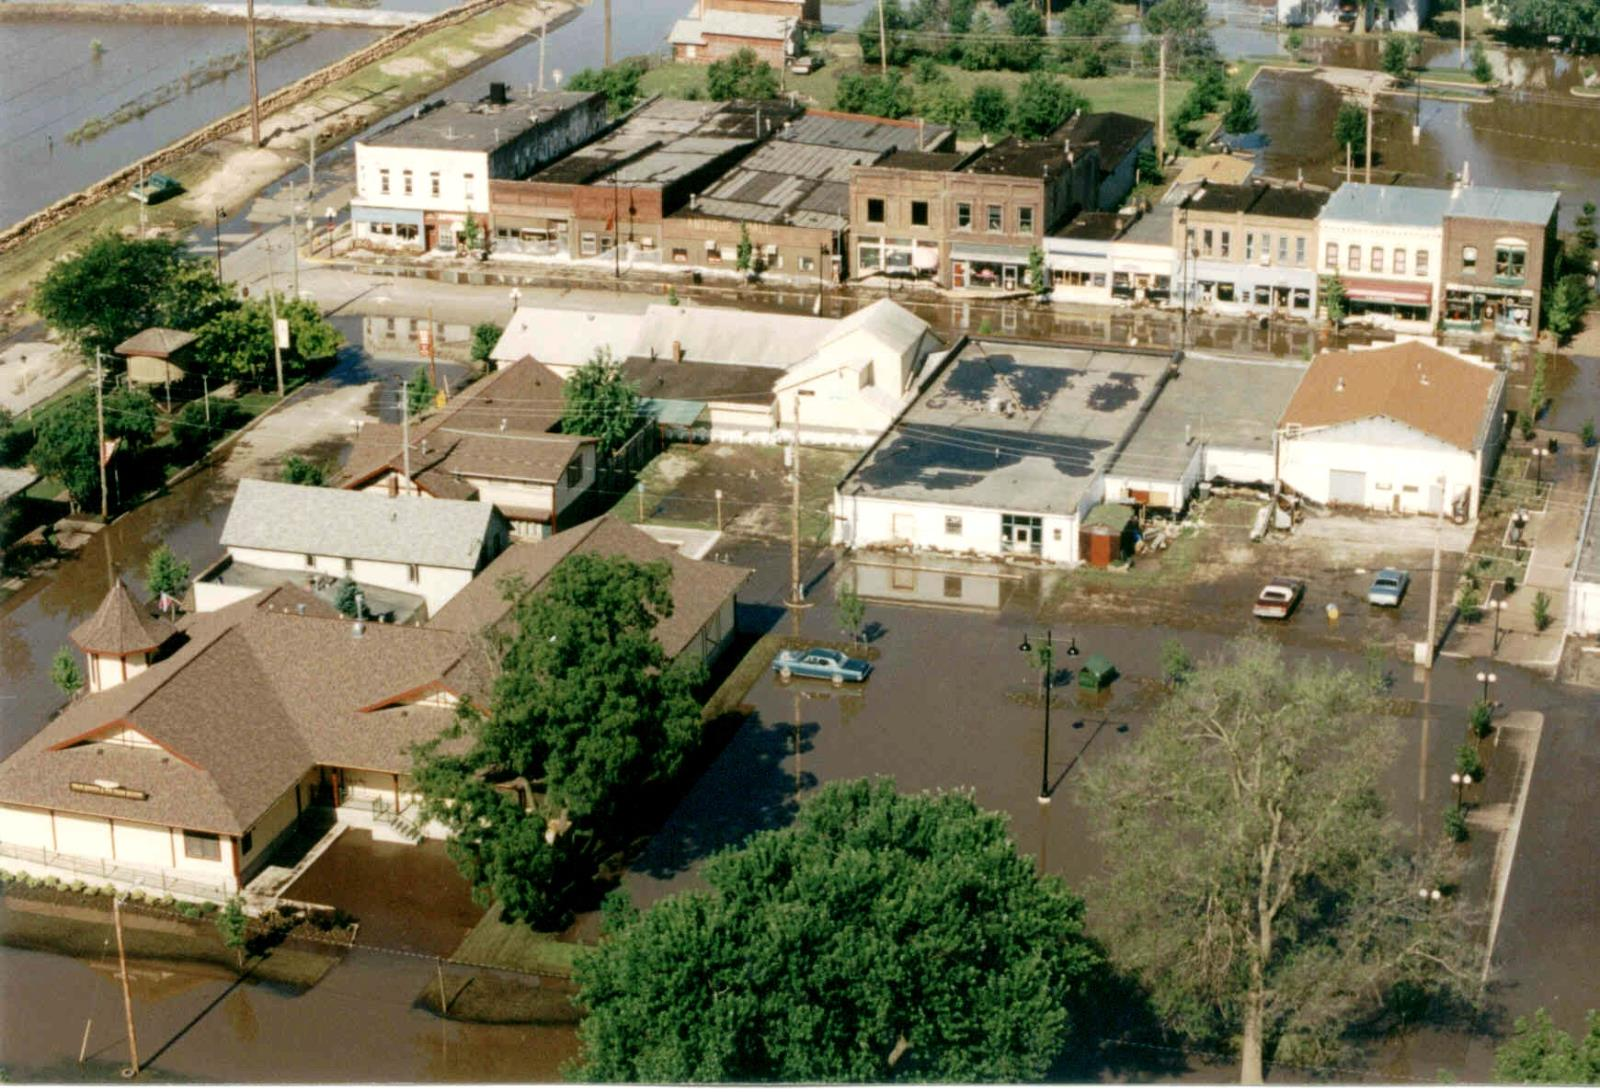 1993_Flood_5th & Railroad Aerial1993